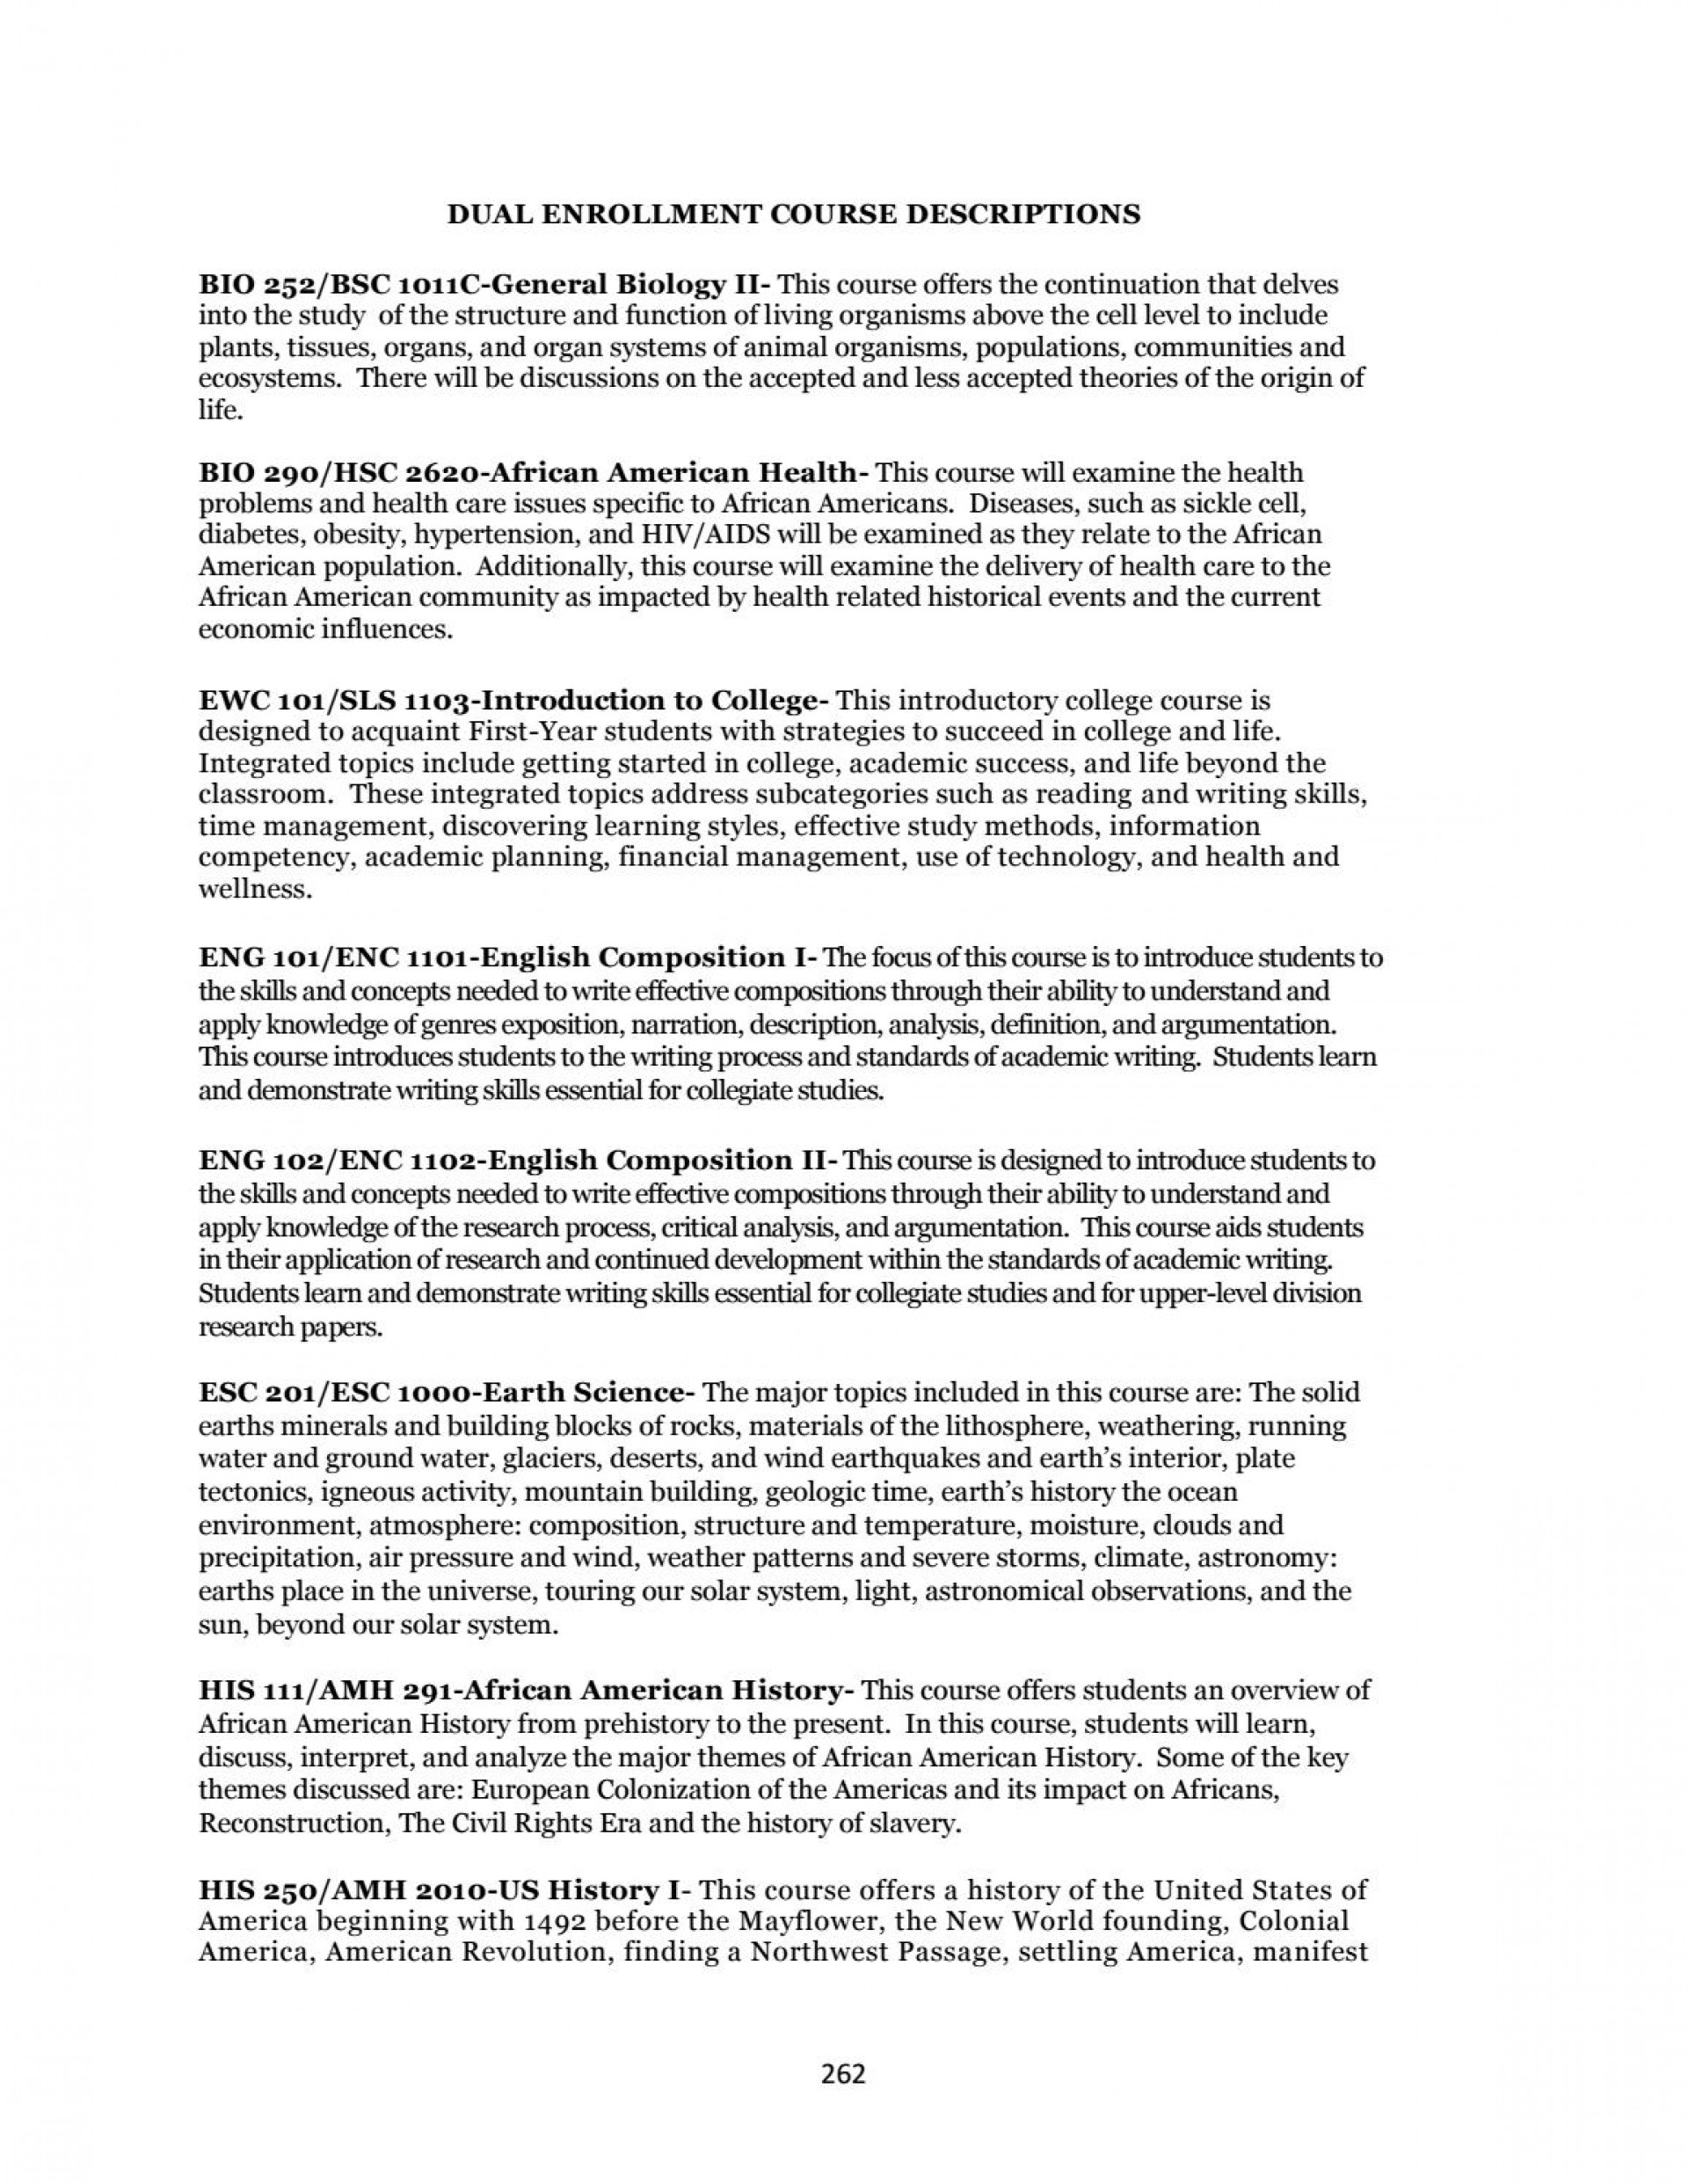 010 Page 259 Research Paper Good Topics For English Surprising 102 1920